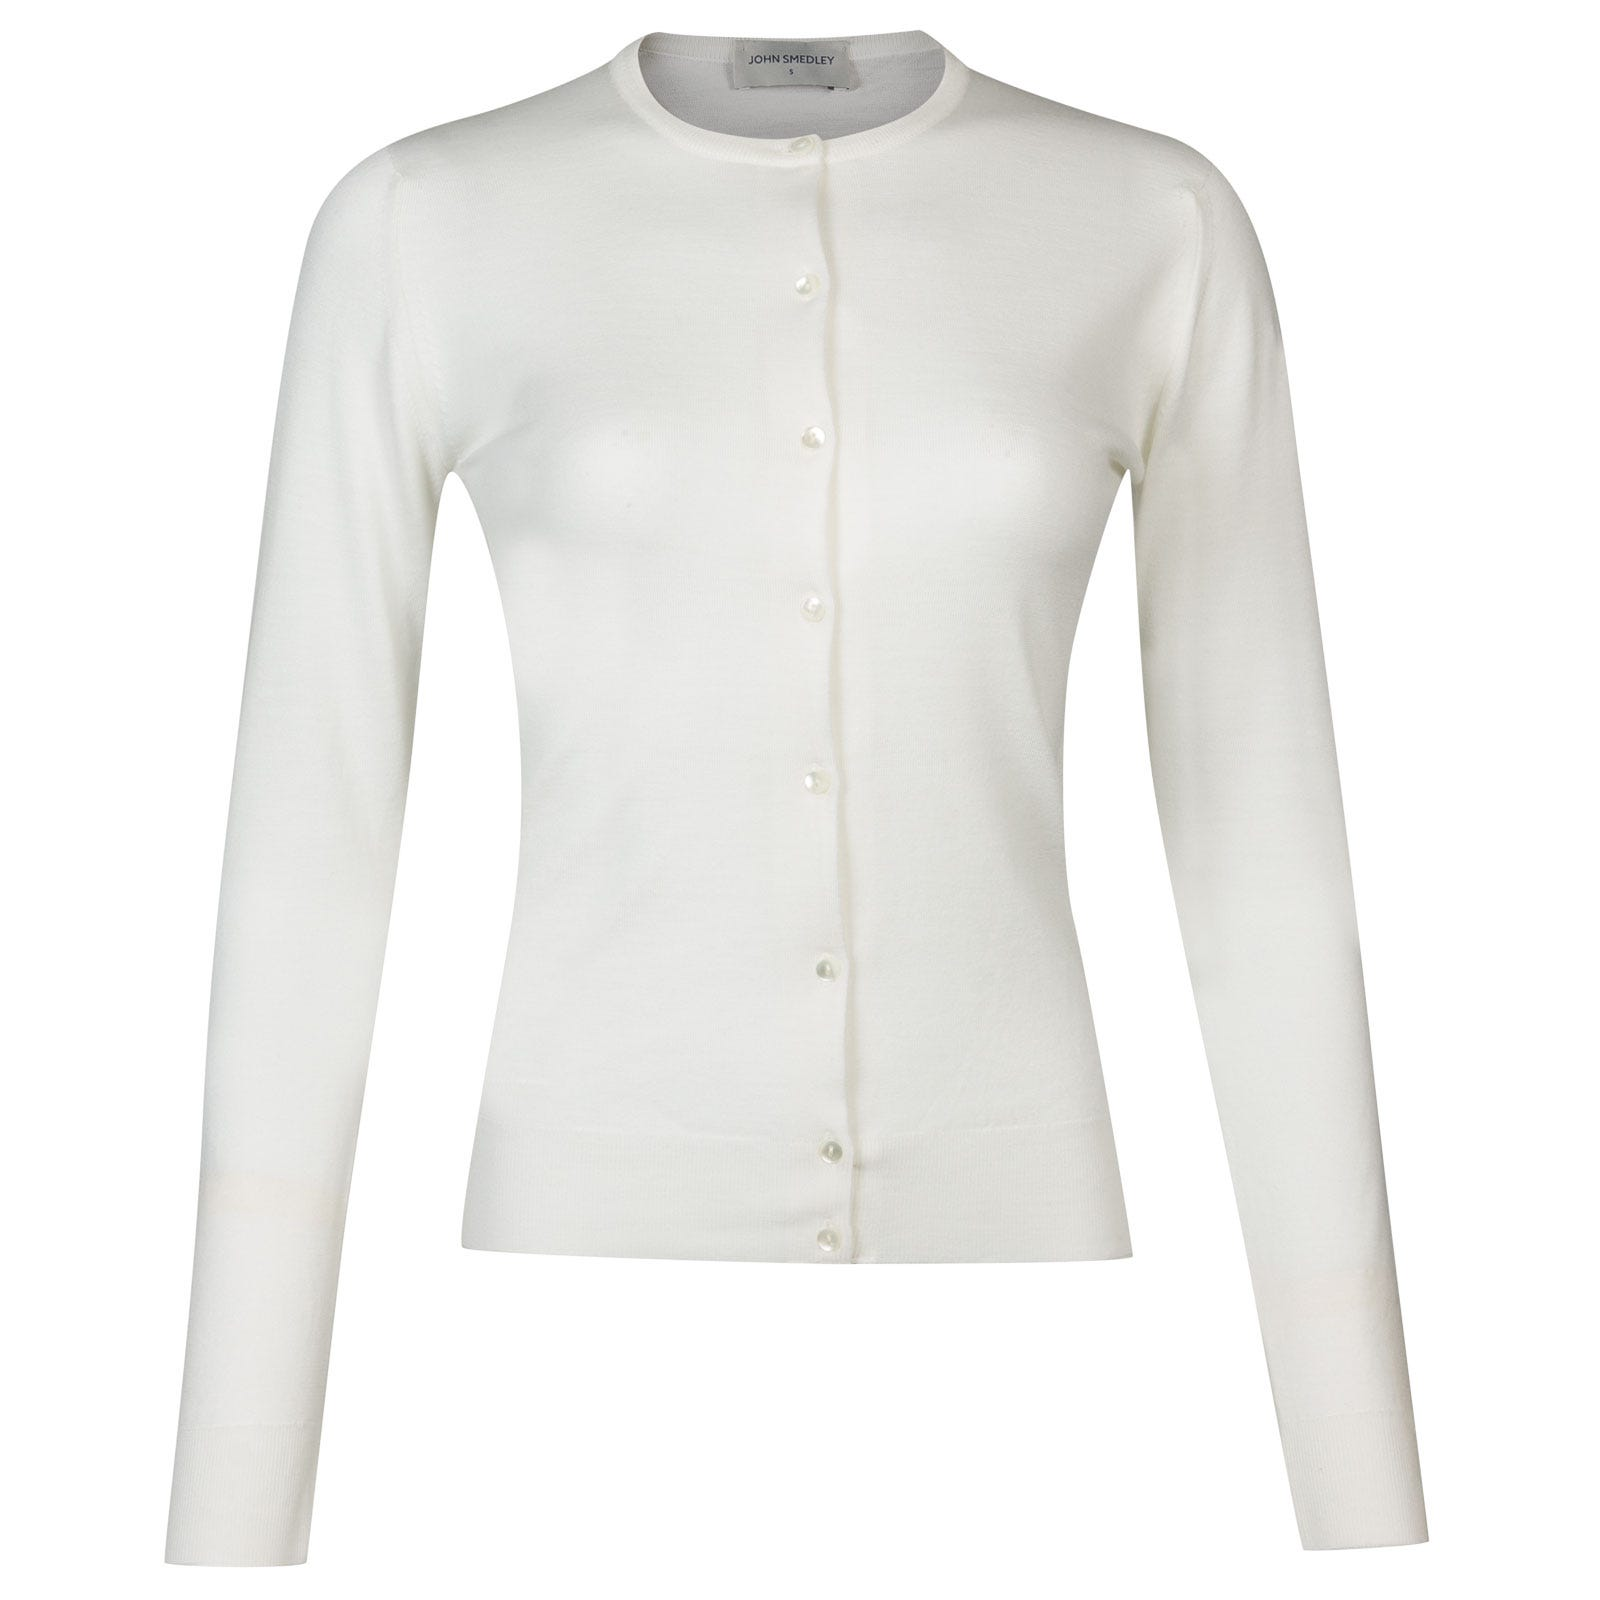 John Smedley Pansy Merino Wool Cardigan in Snow White-XL